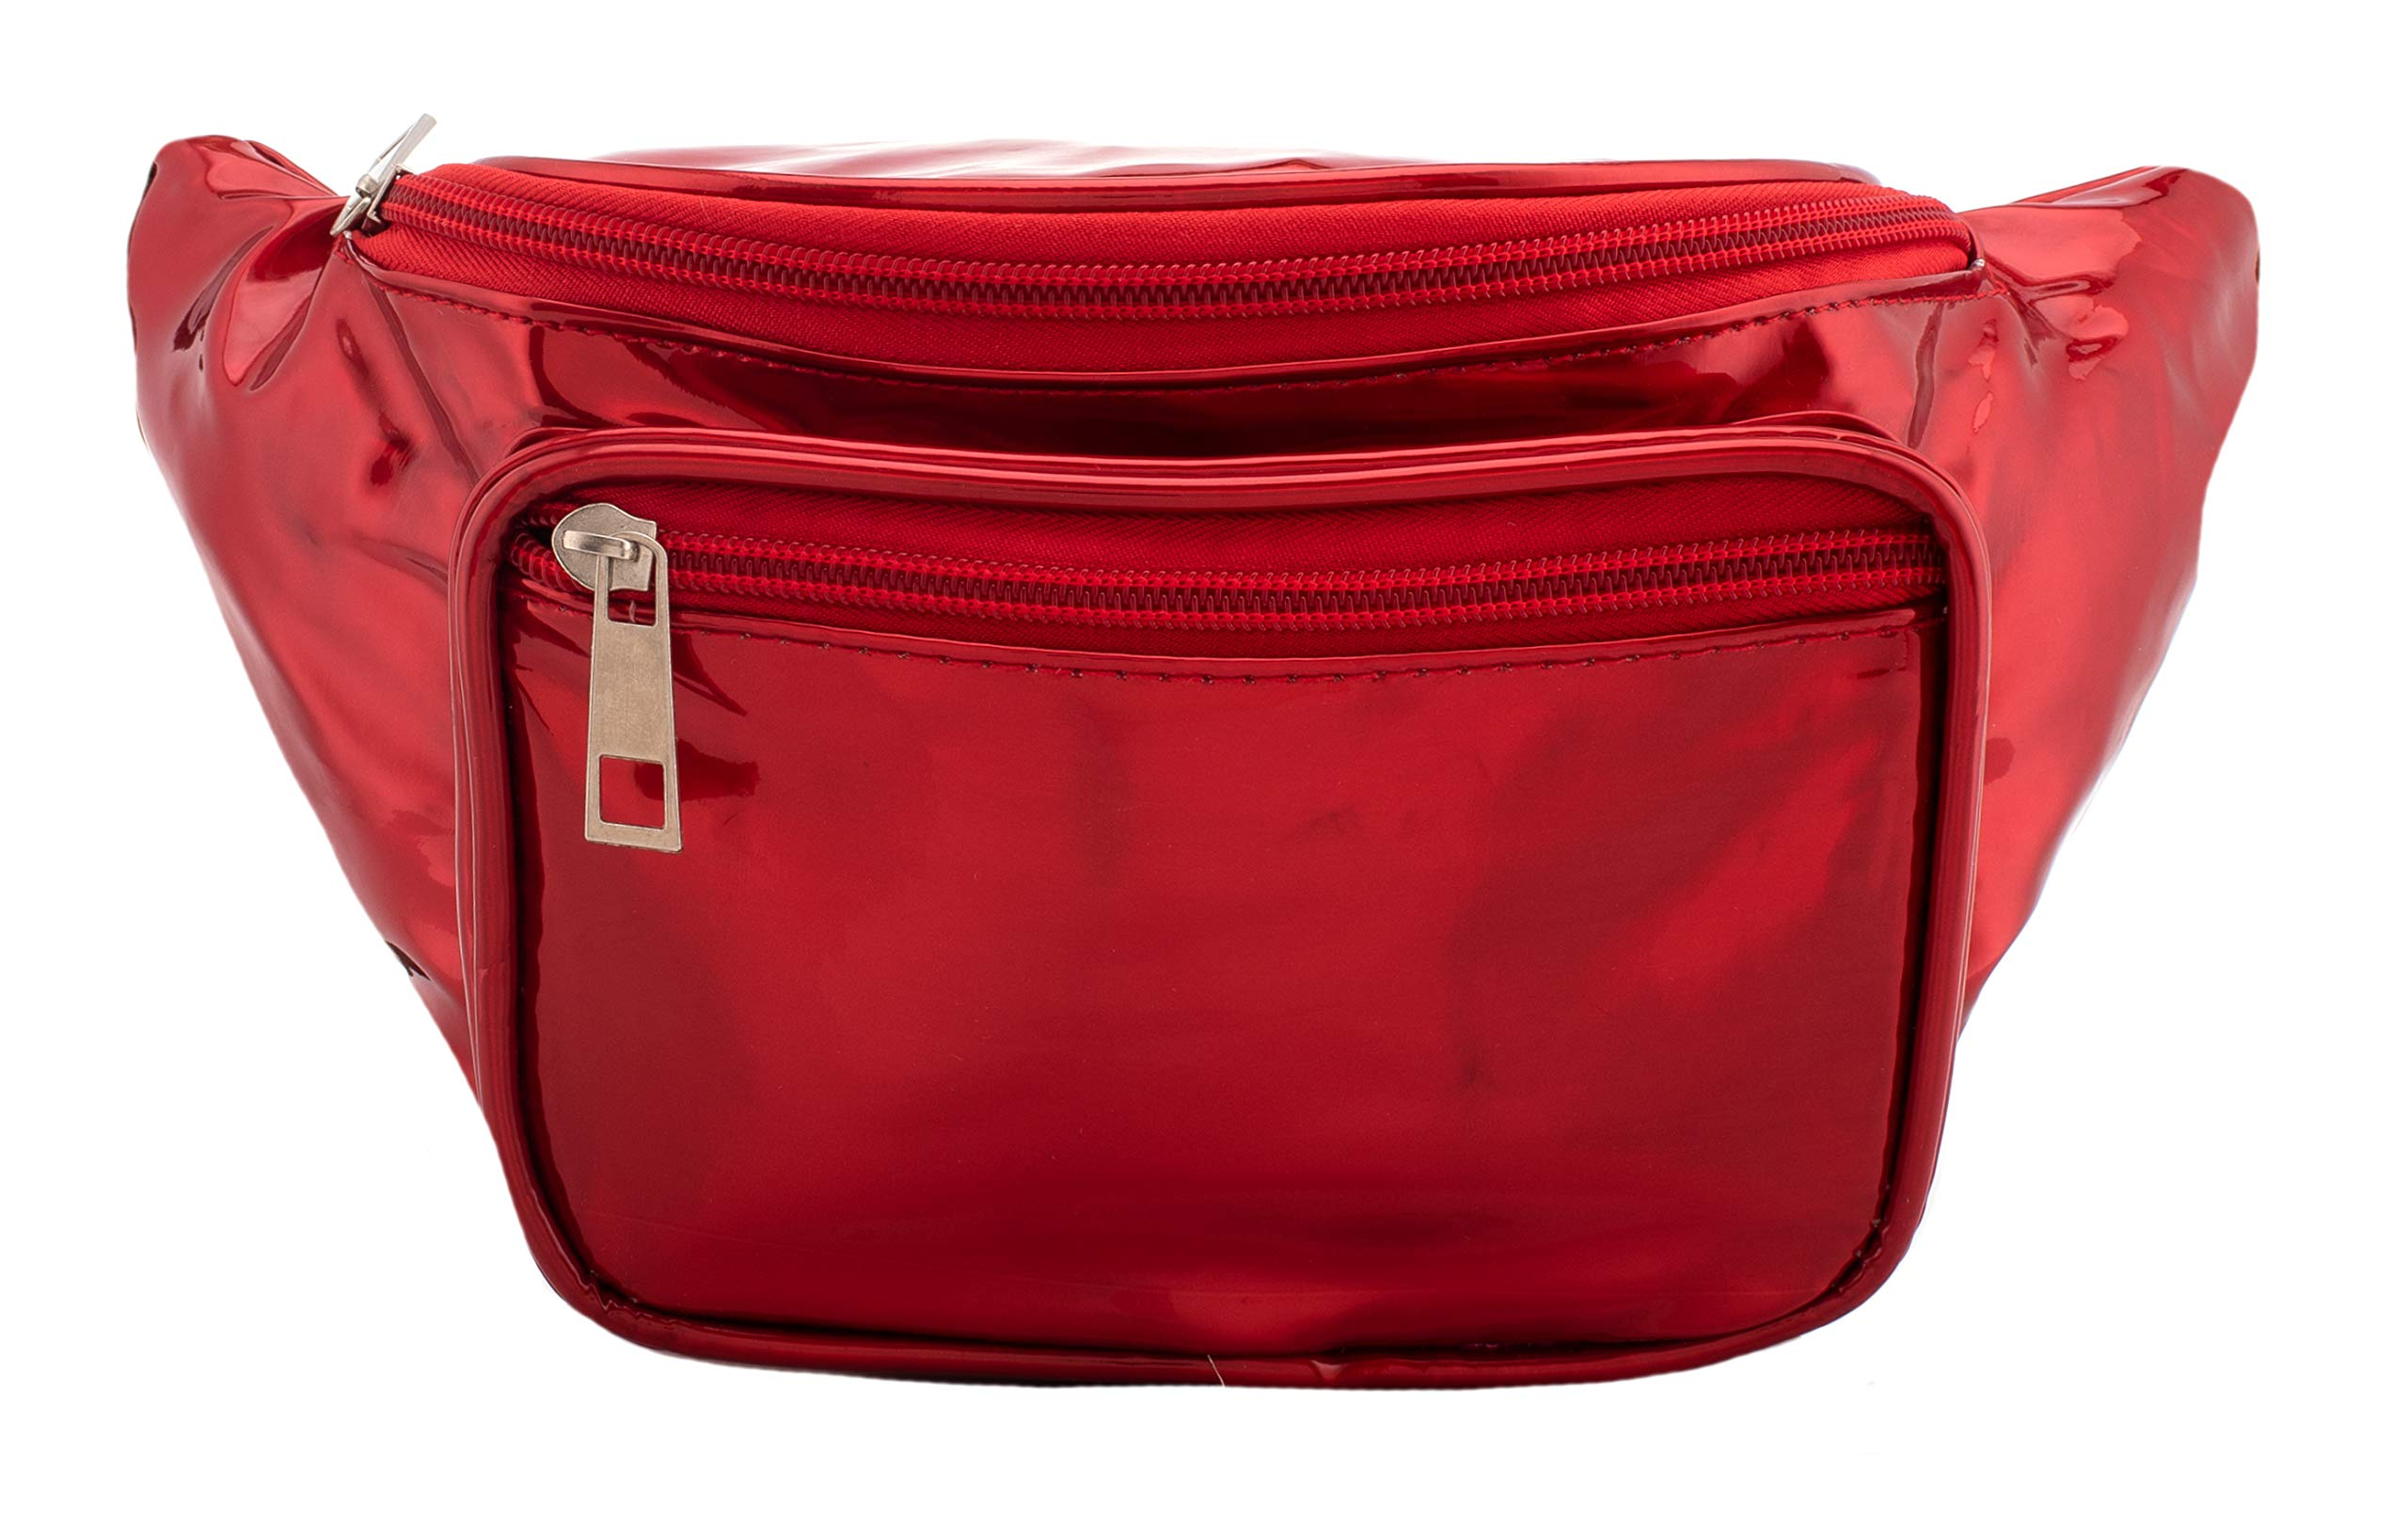 Holographic Fanny Pack for Women - Shiny Holographic Festival Phanny Bum Packs - Red